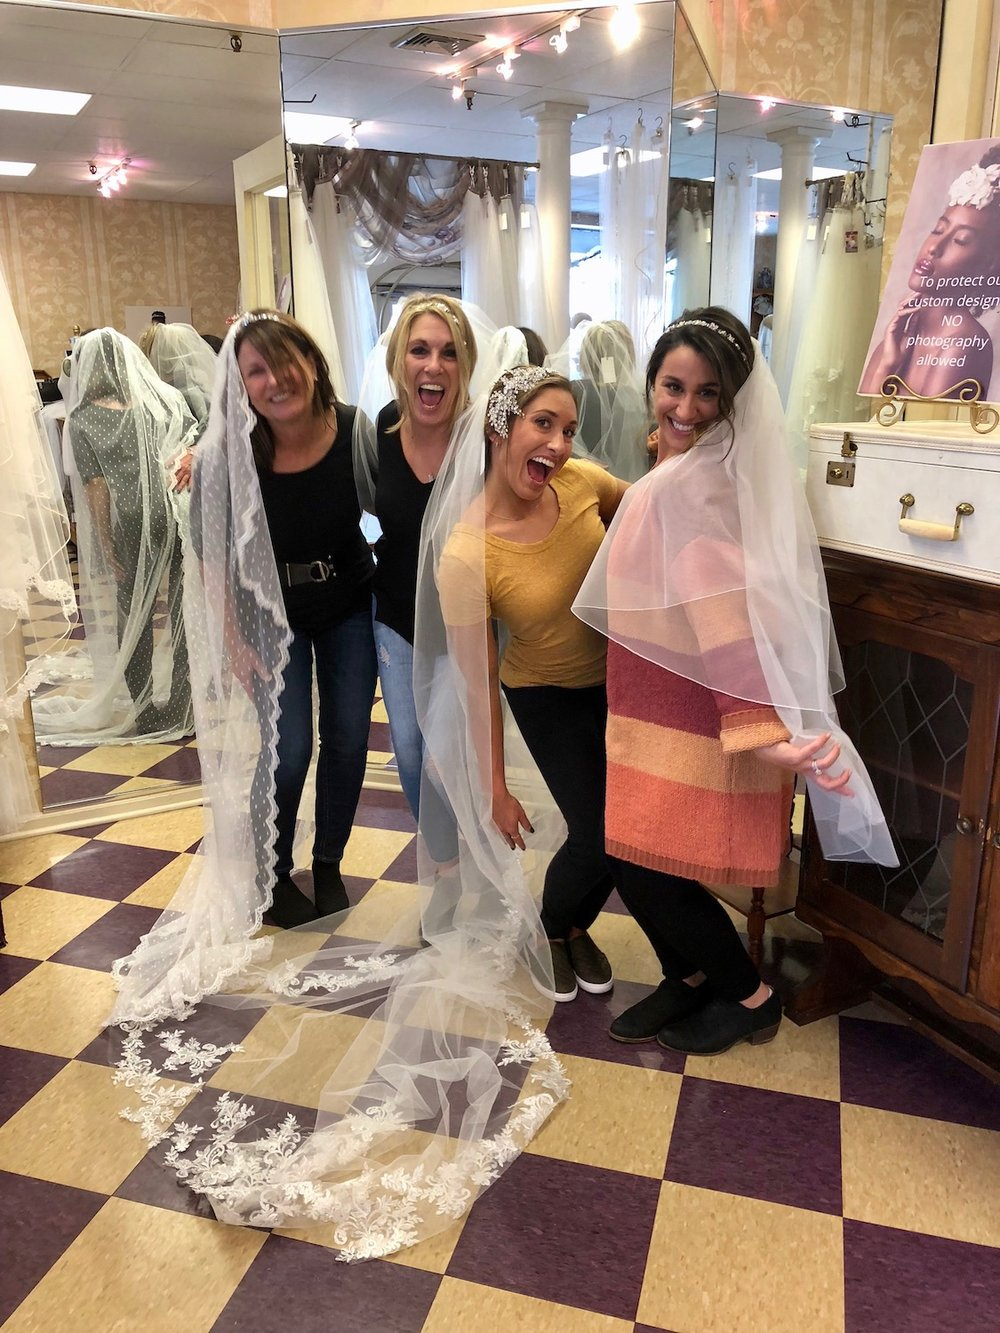 This photo says it all. Breeanna's entire entourage wanted to try on a veil and headpiece. They were so much fun to work with and open to other ideas.